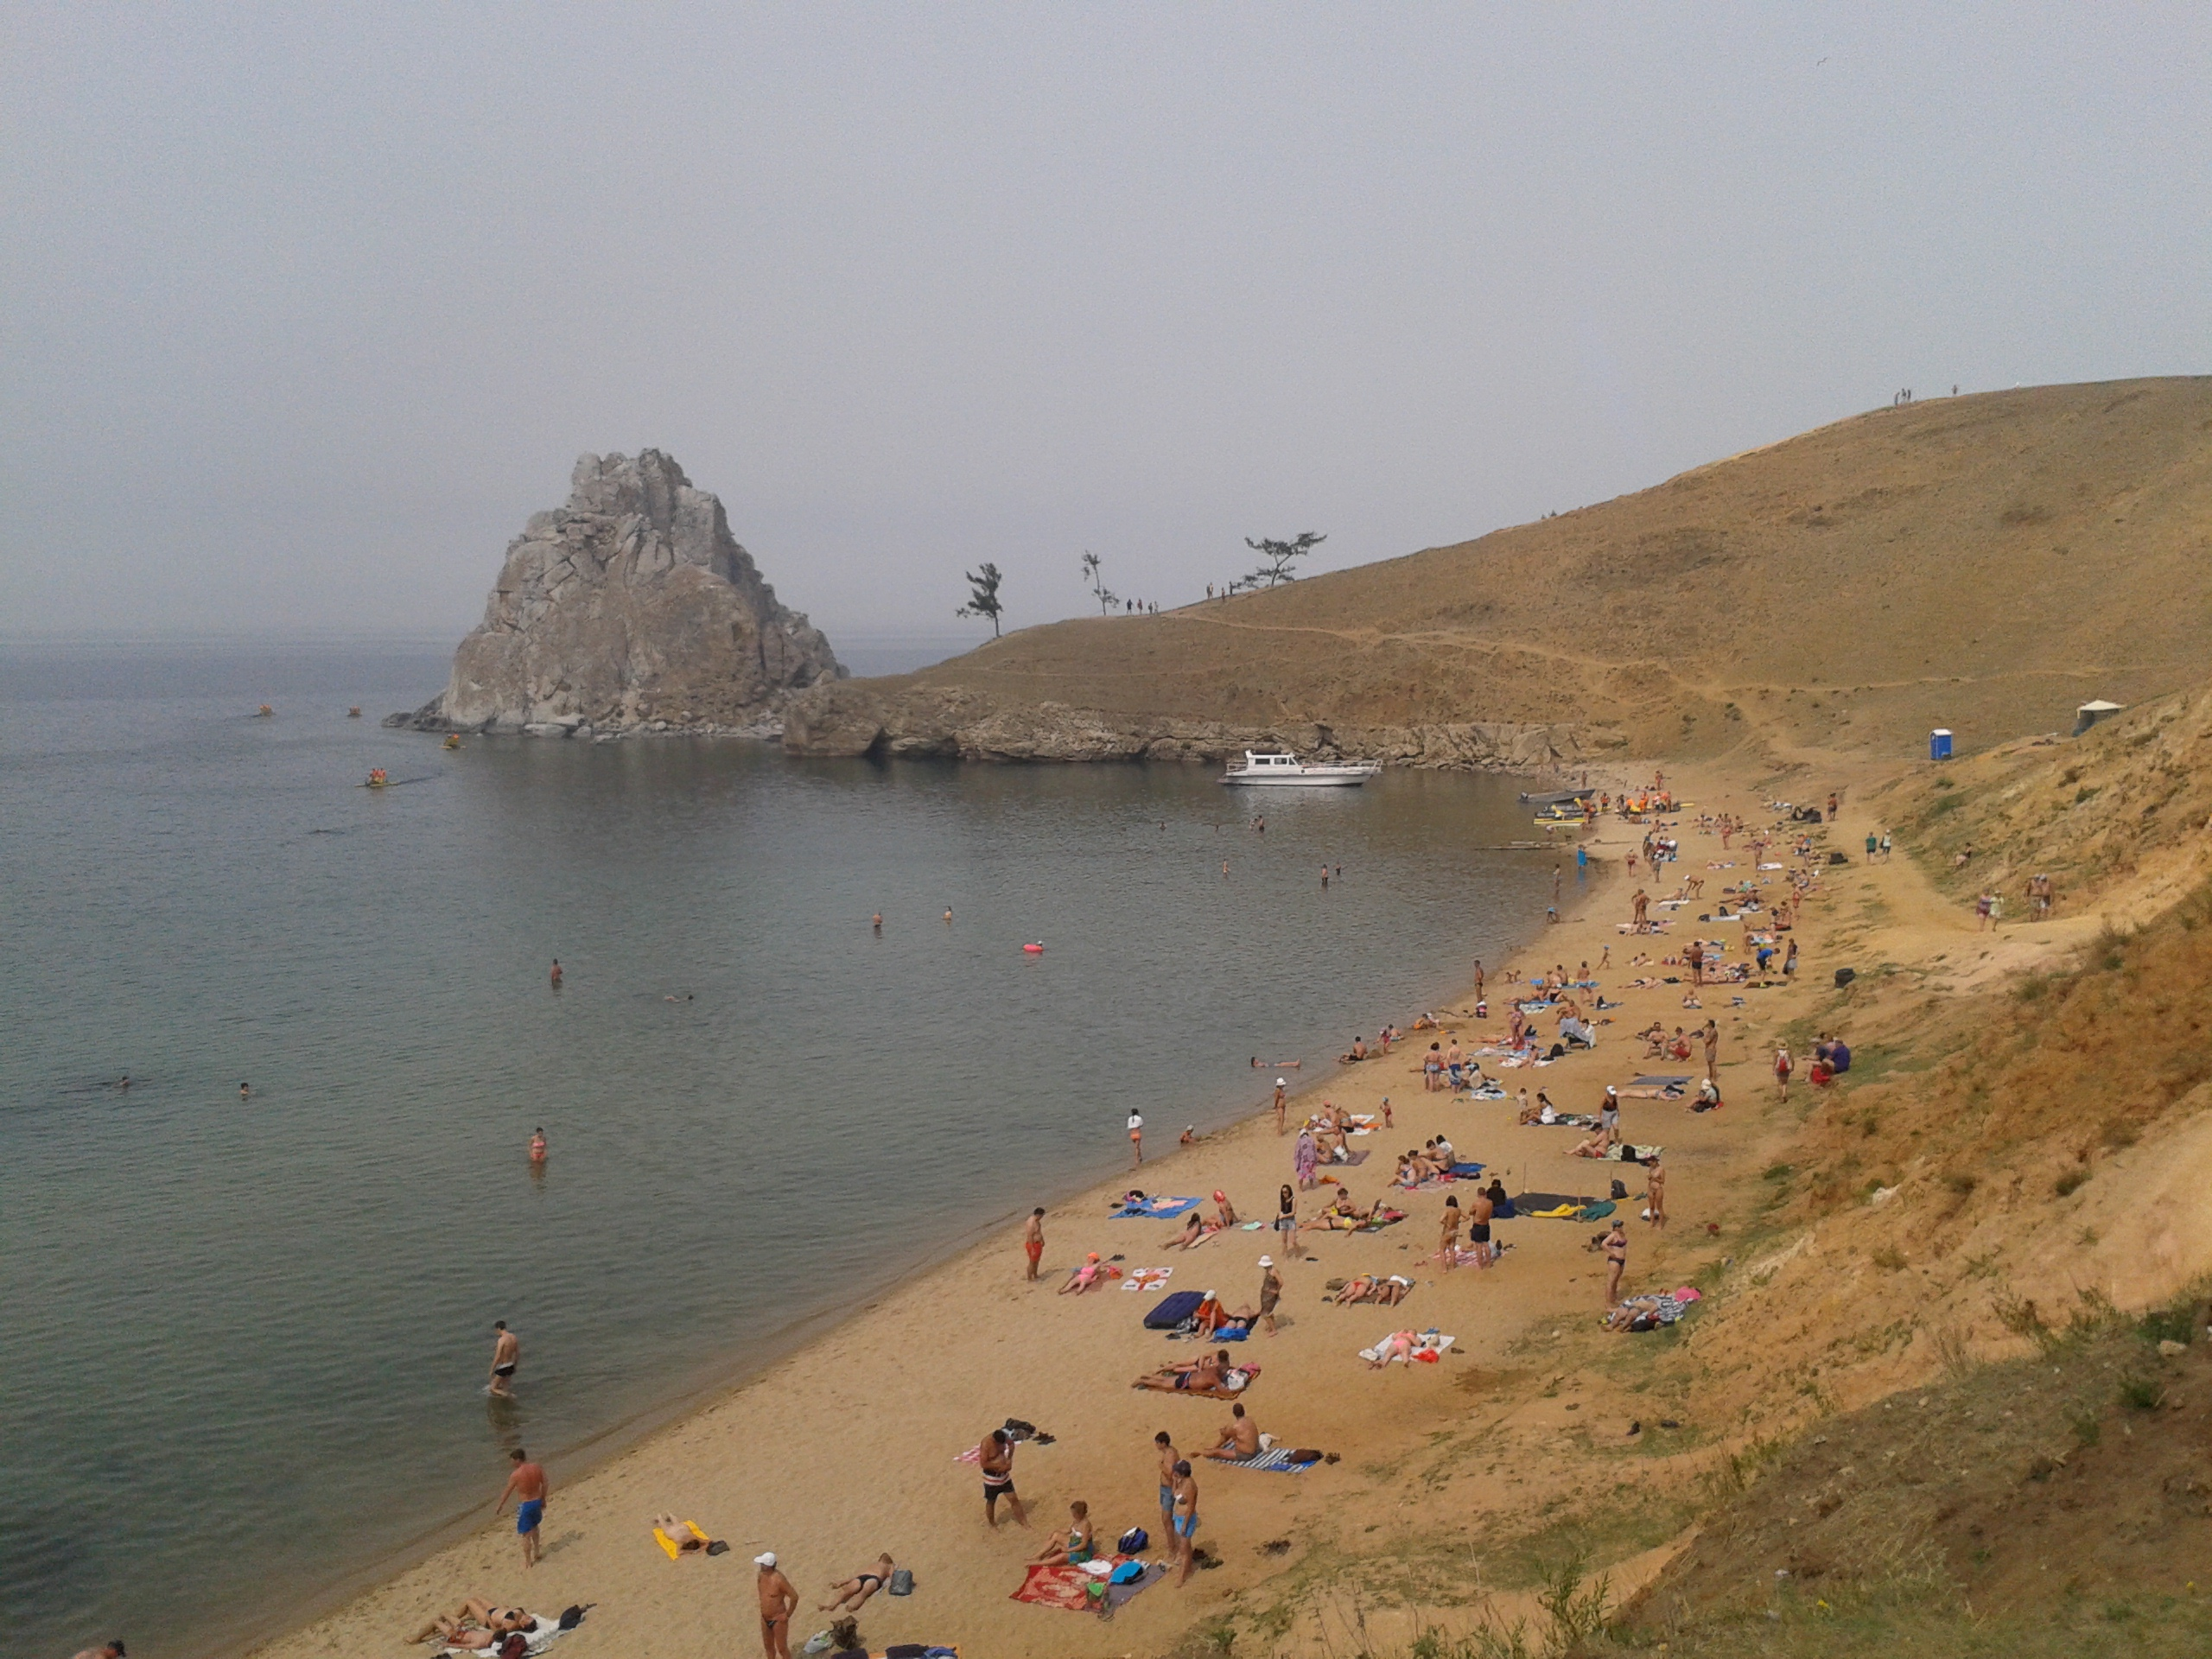 Image: Summer time is beach time in Siberia (Olkhon Island, Lake Baikal). Credit: Bryce Stewart